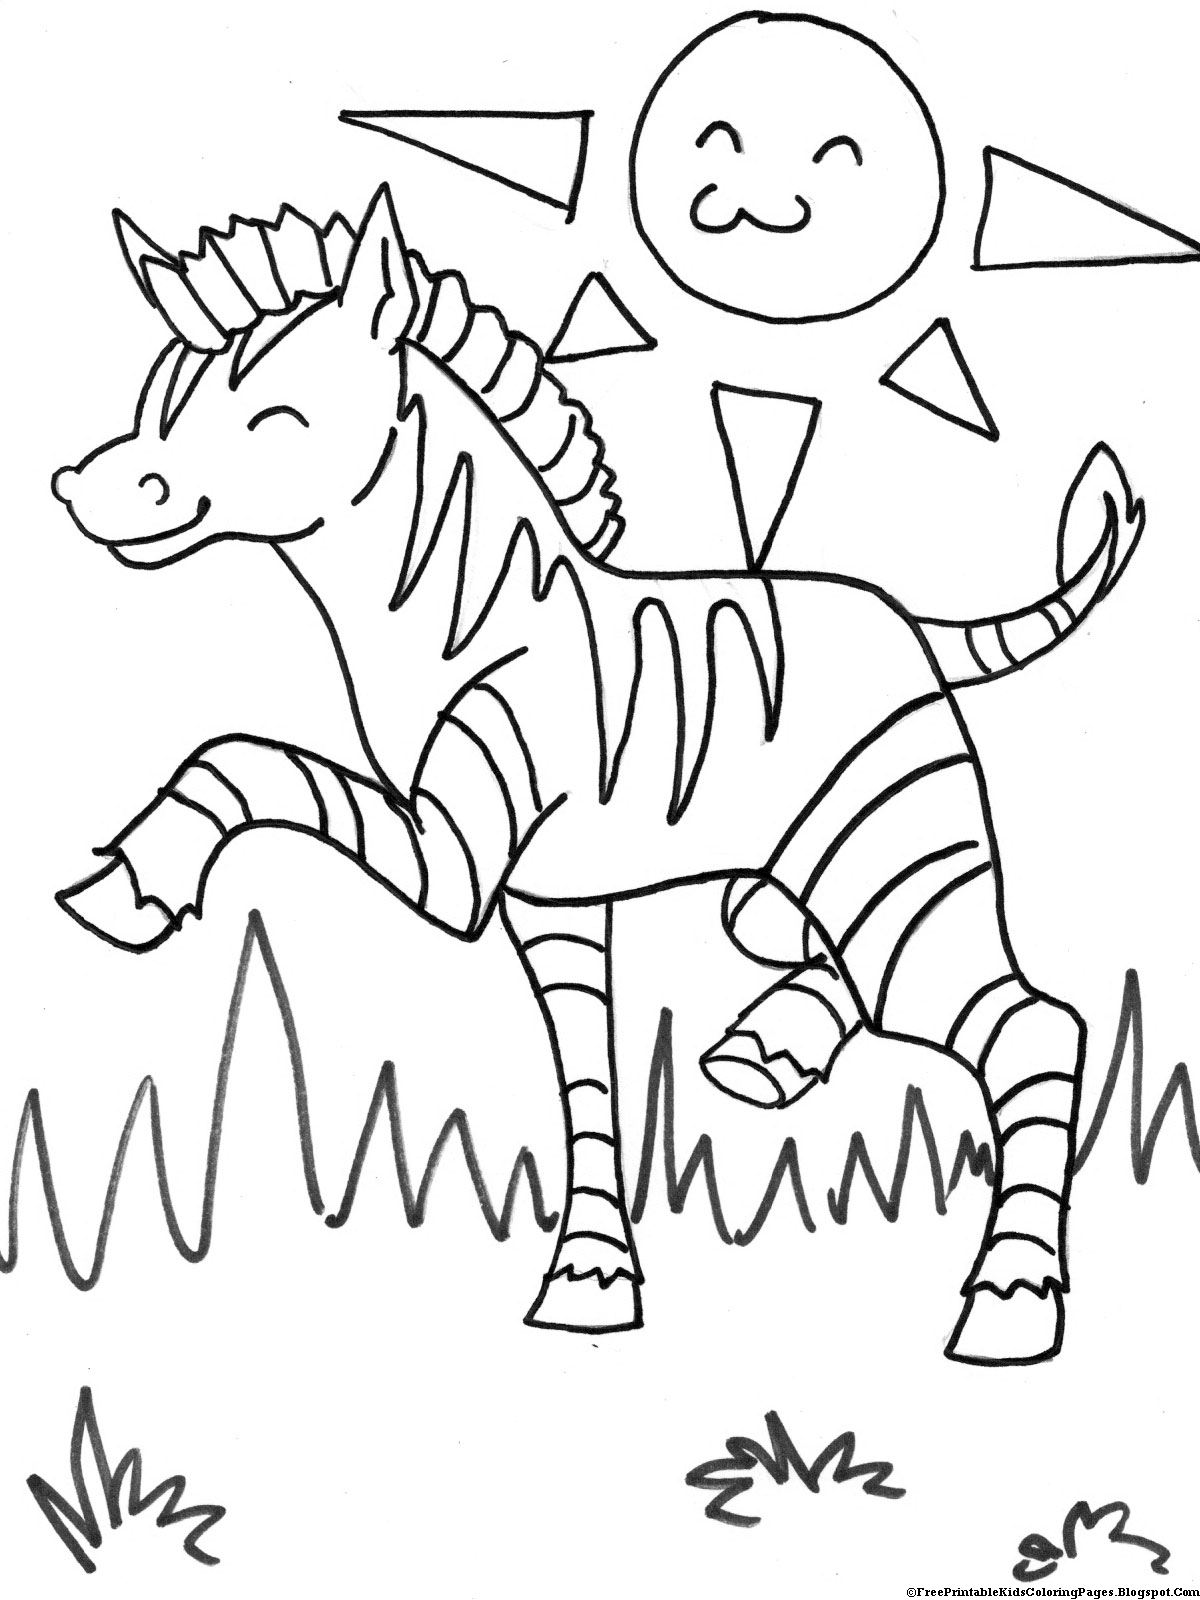 animal coloring pages free zebra coloring pages free printable kids coloring pages free pages coloring animal